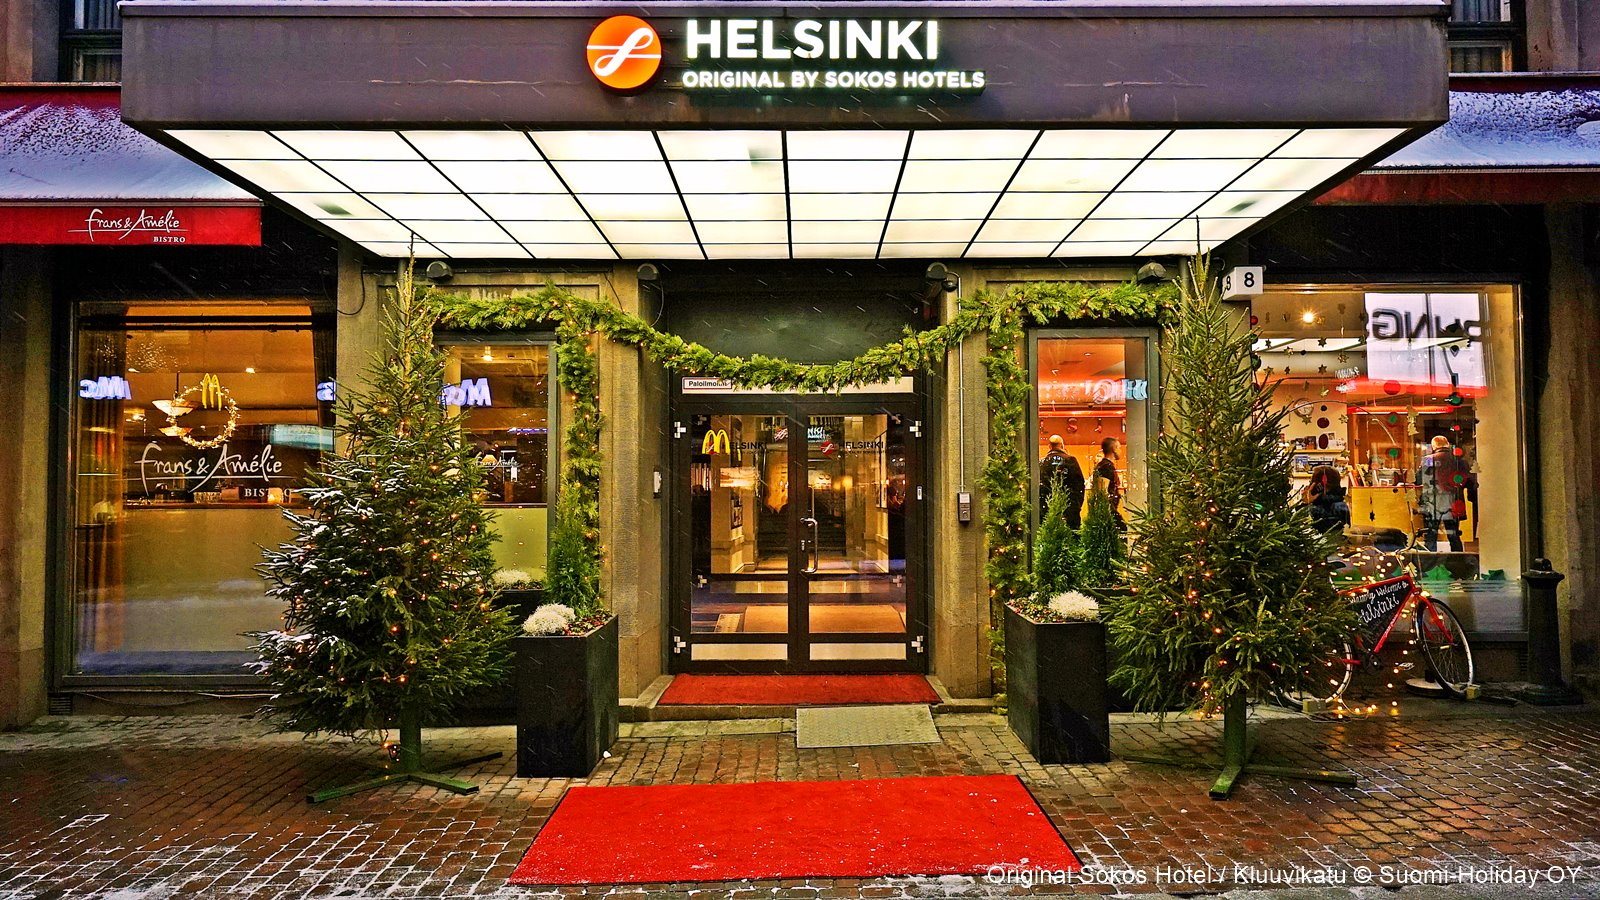 Original Sokos Hotel Helsinki downtown